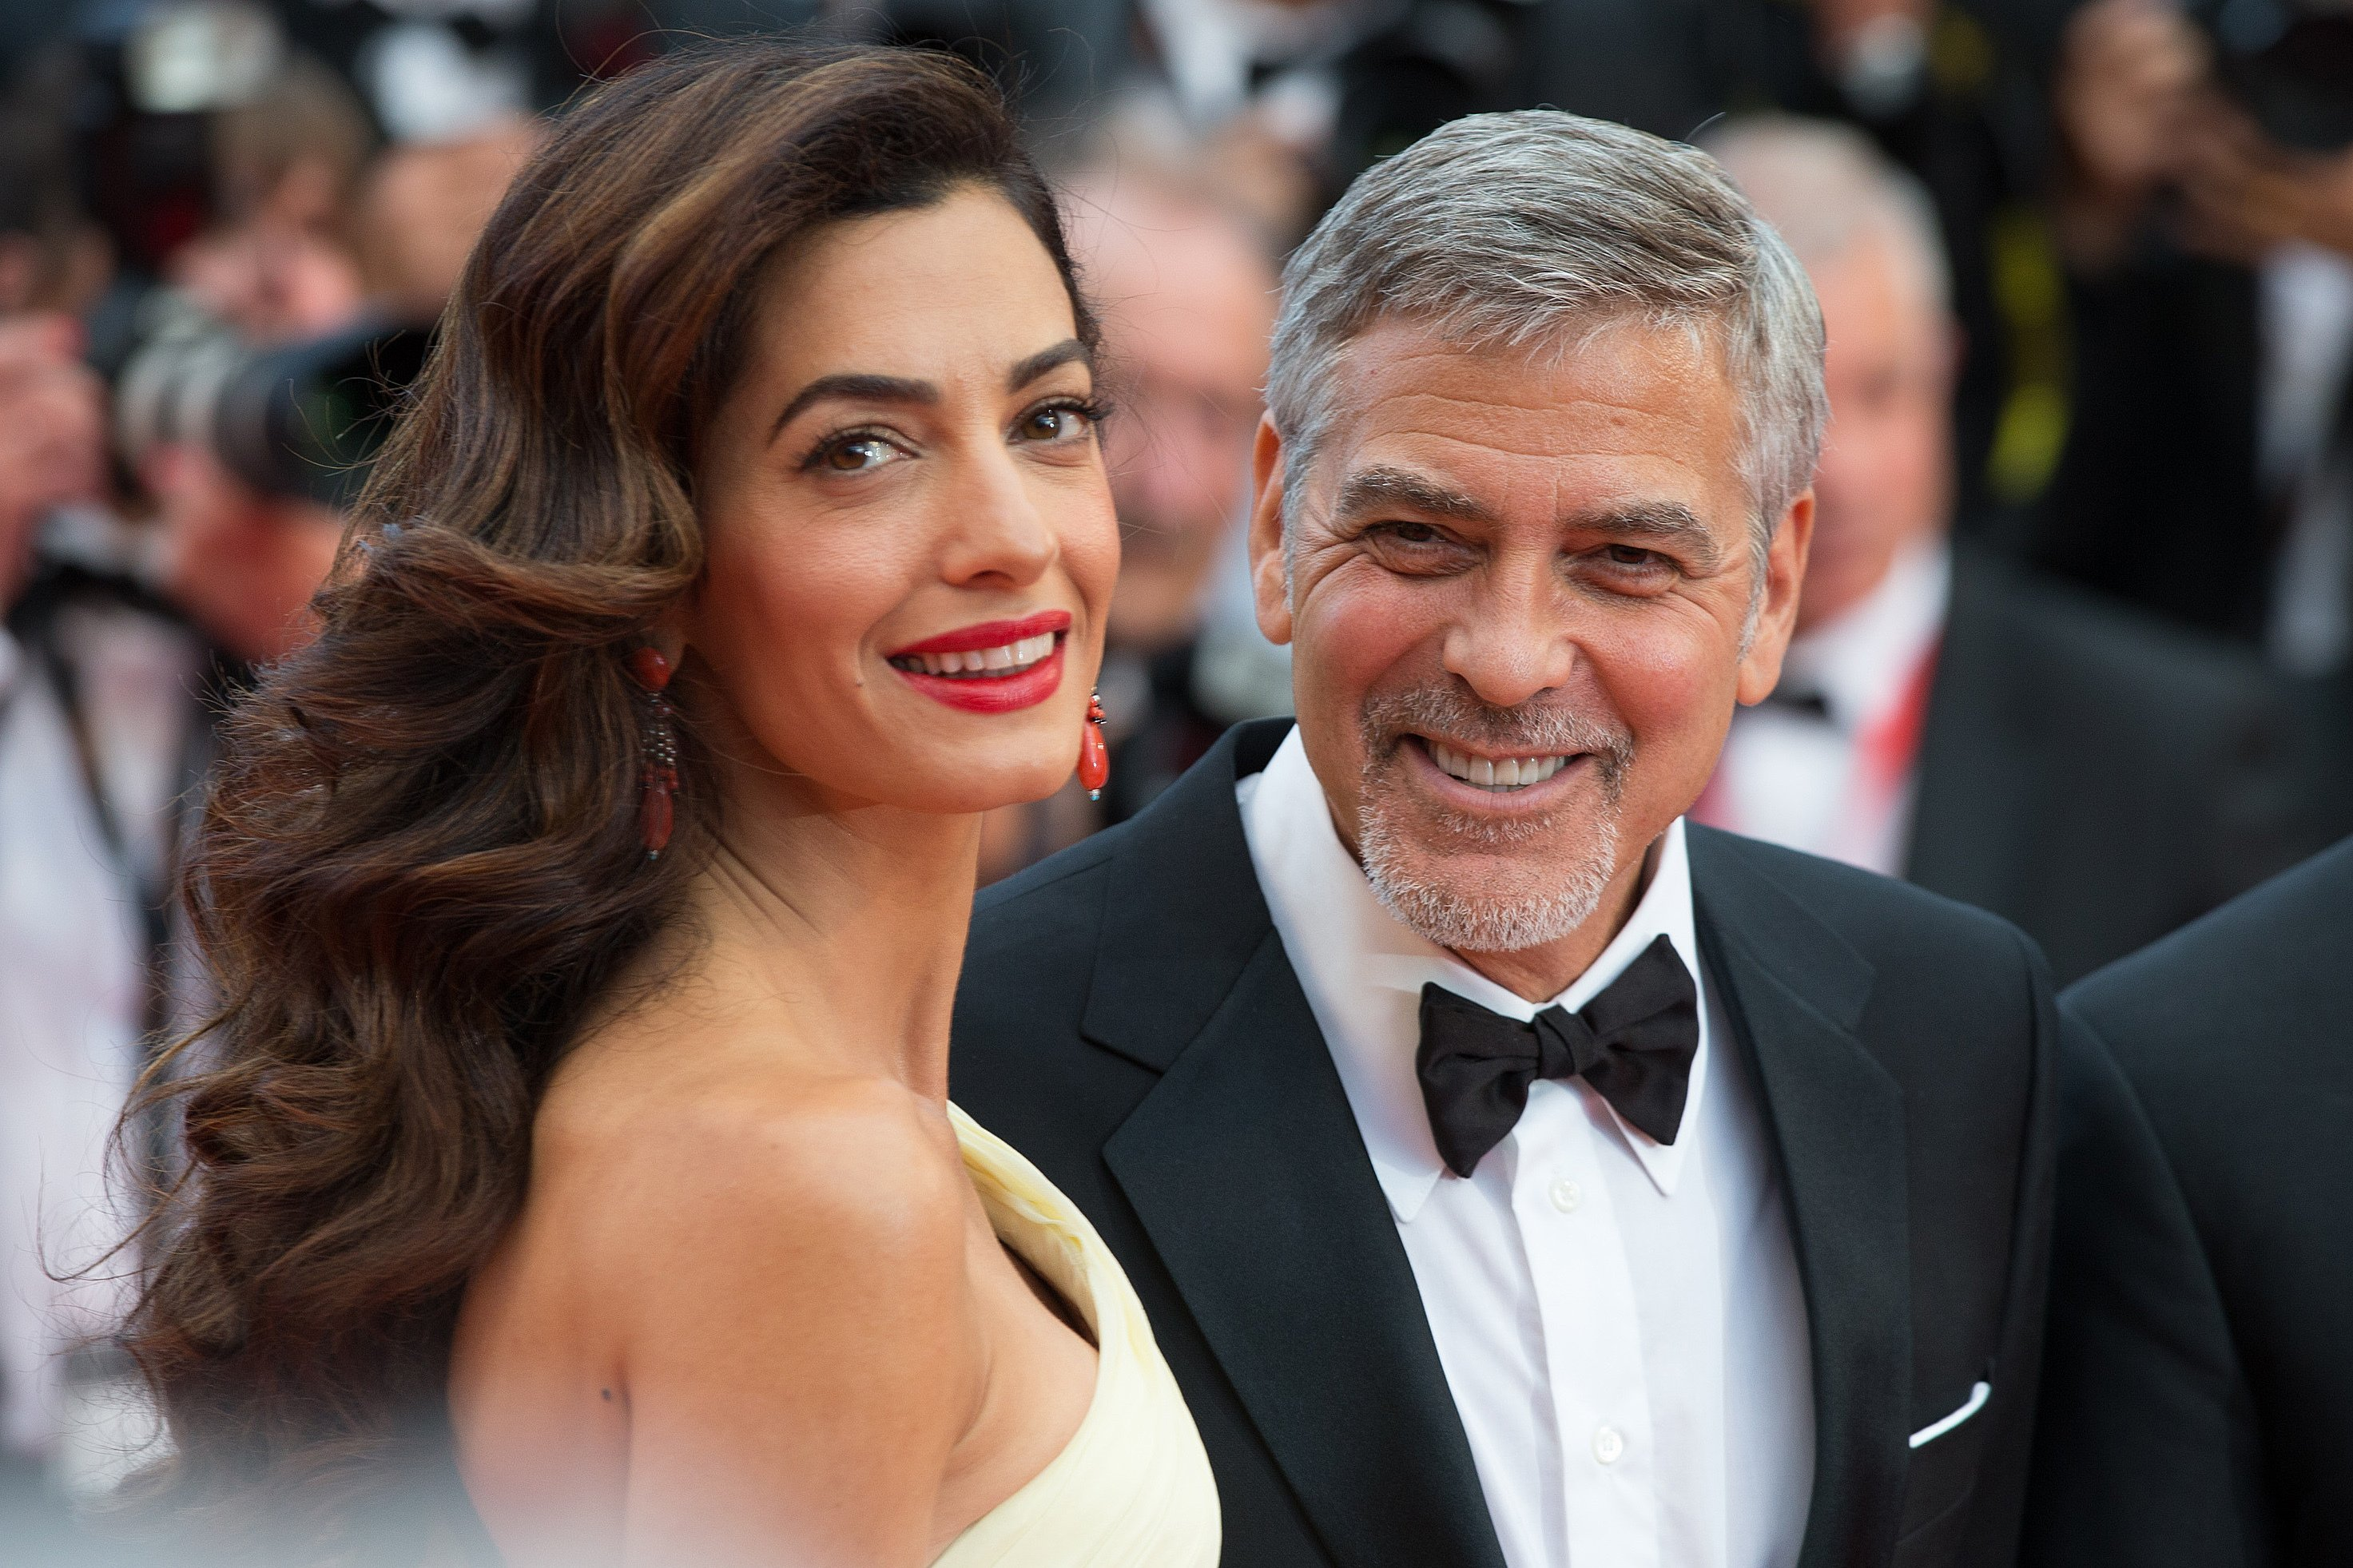 George and Amal Clooney. | Source: Getty Images